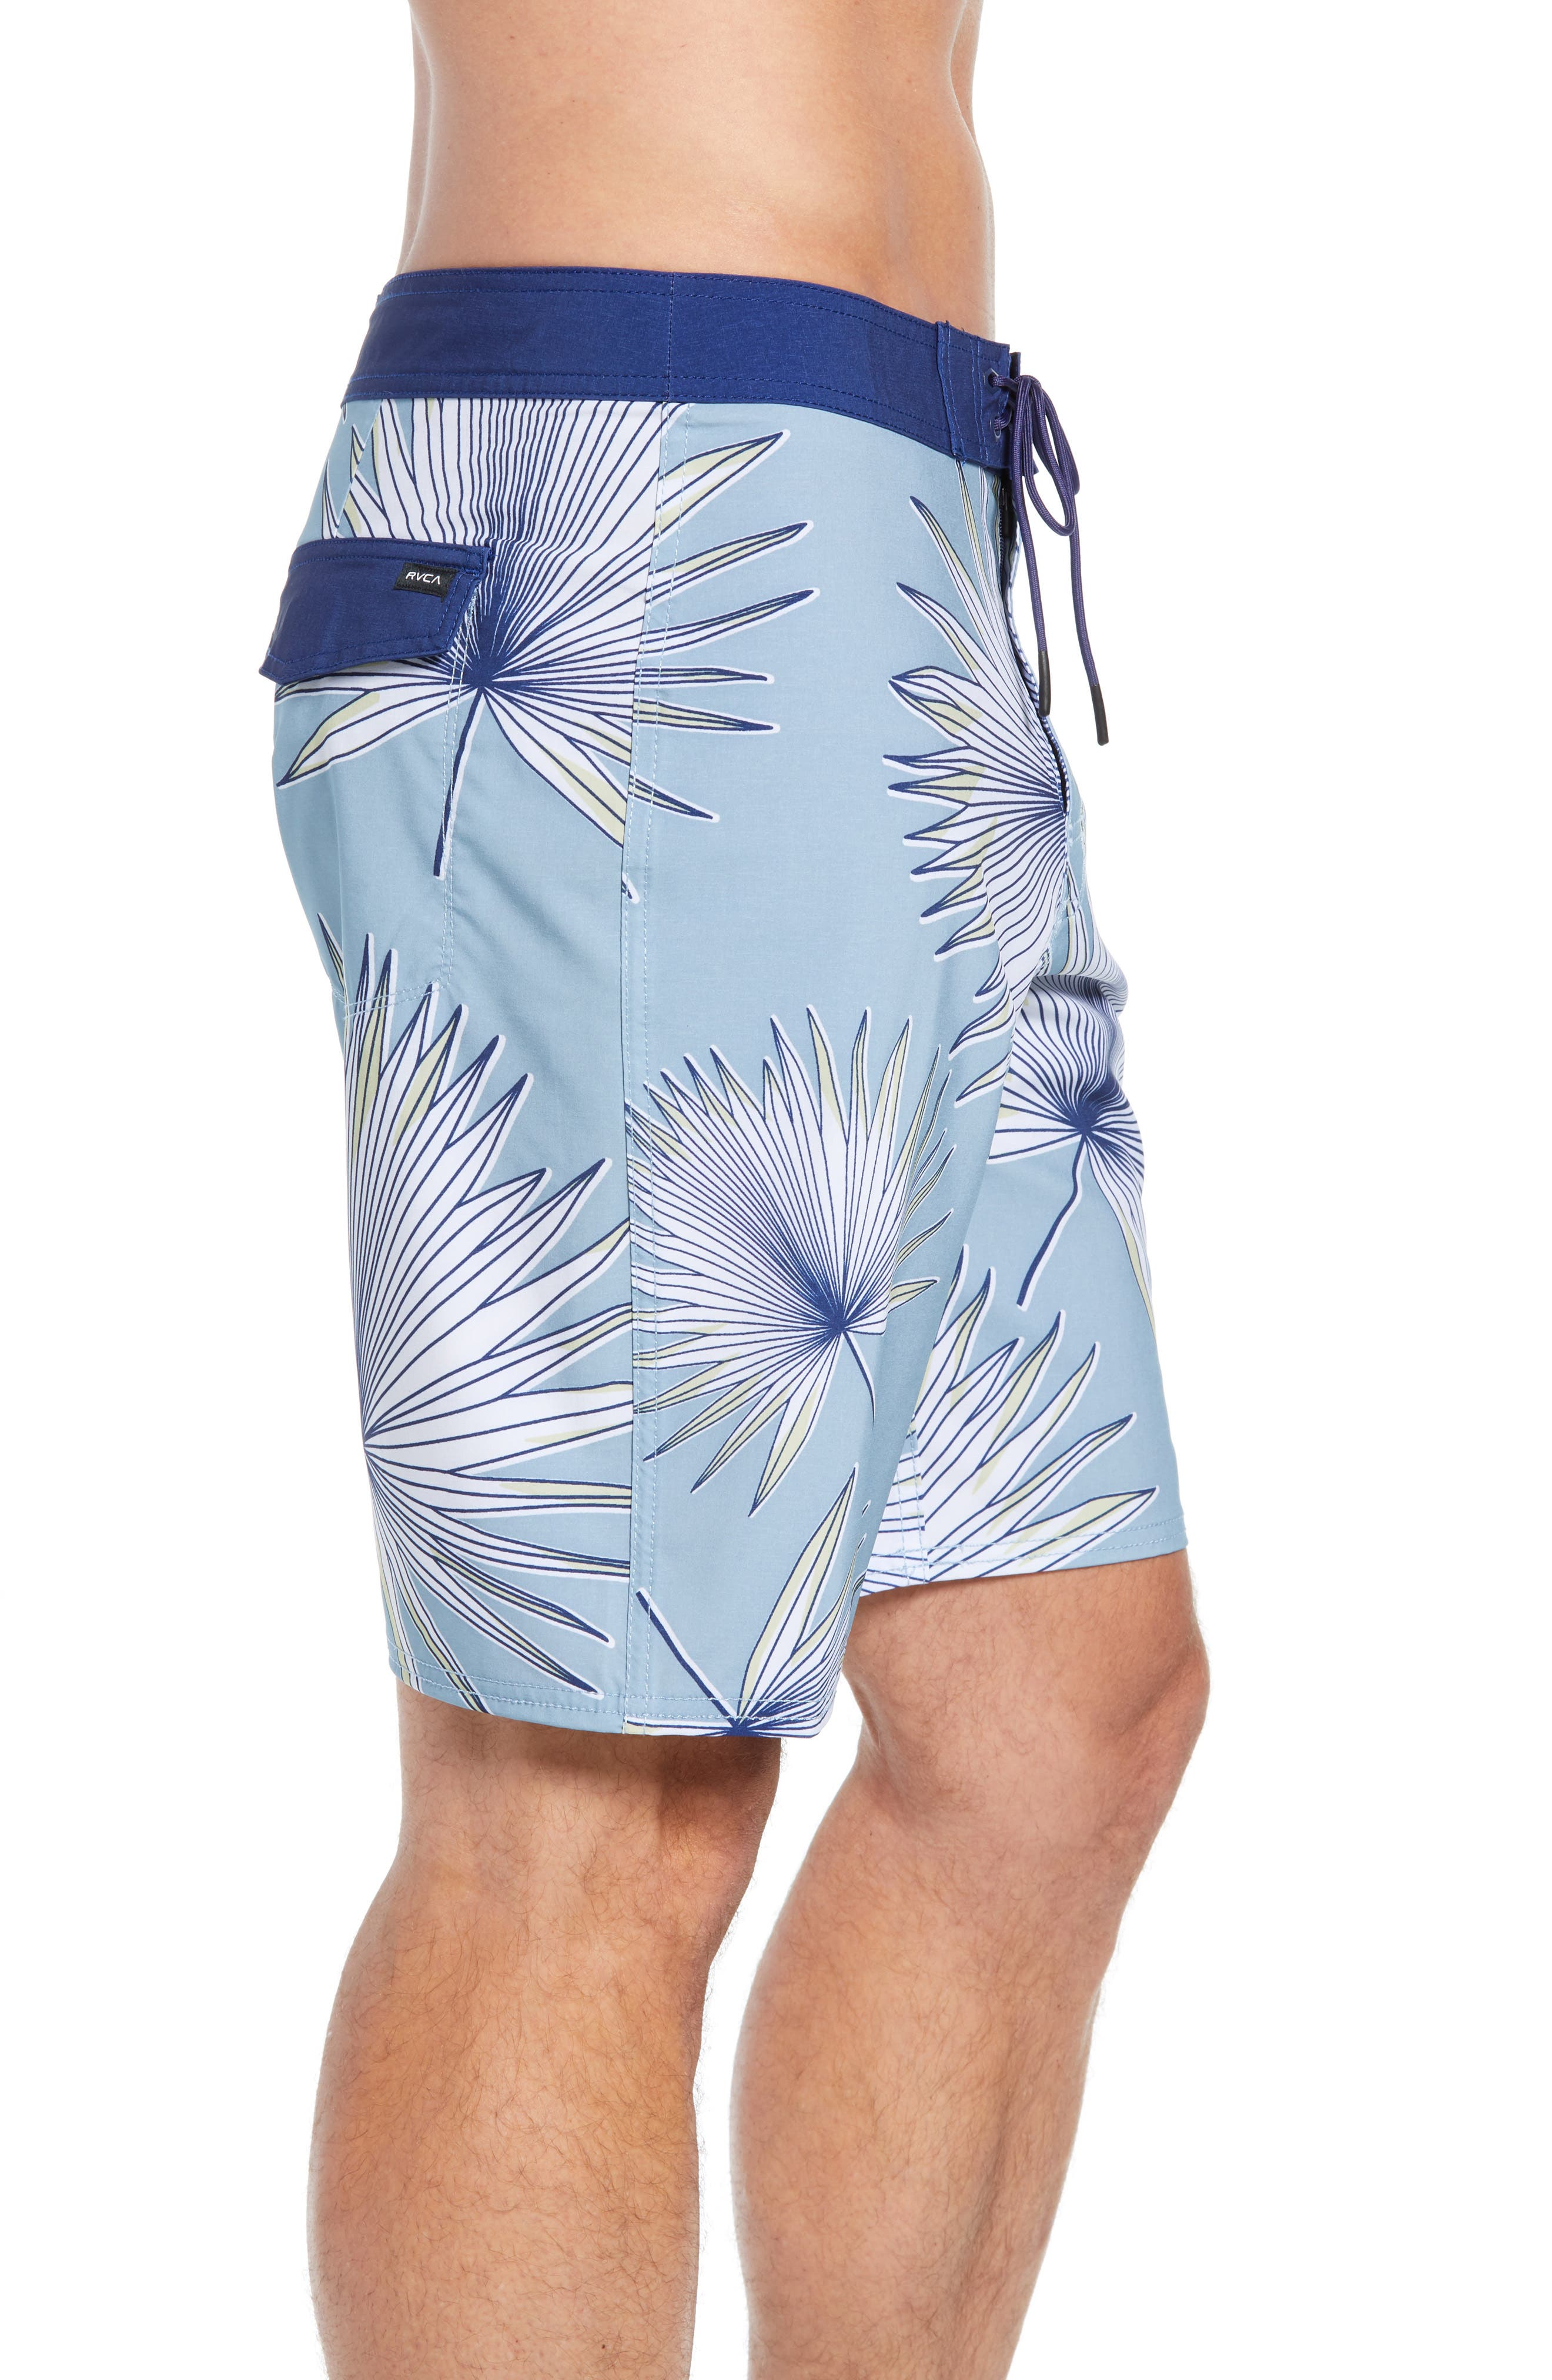 Varca Board Shorts,                             Alternate thumbnail 3, color,                             DUSTY BLUE